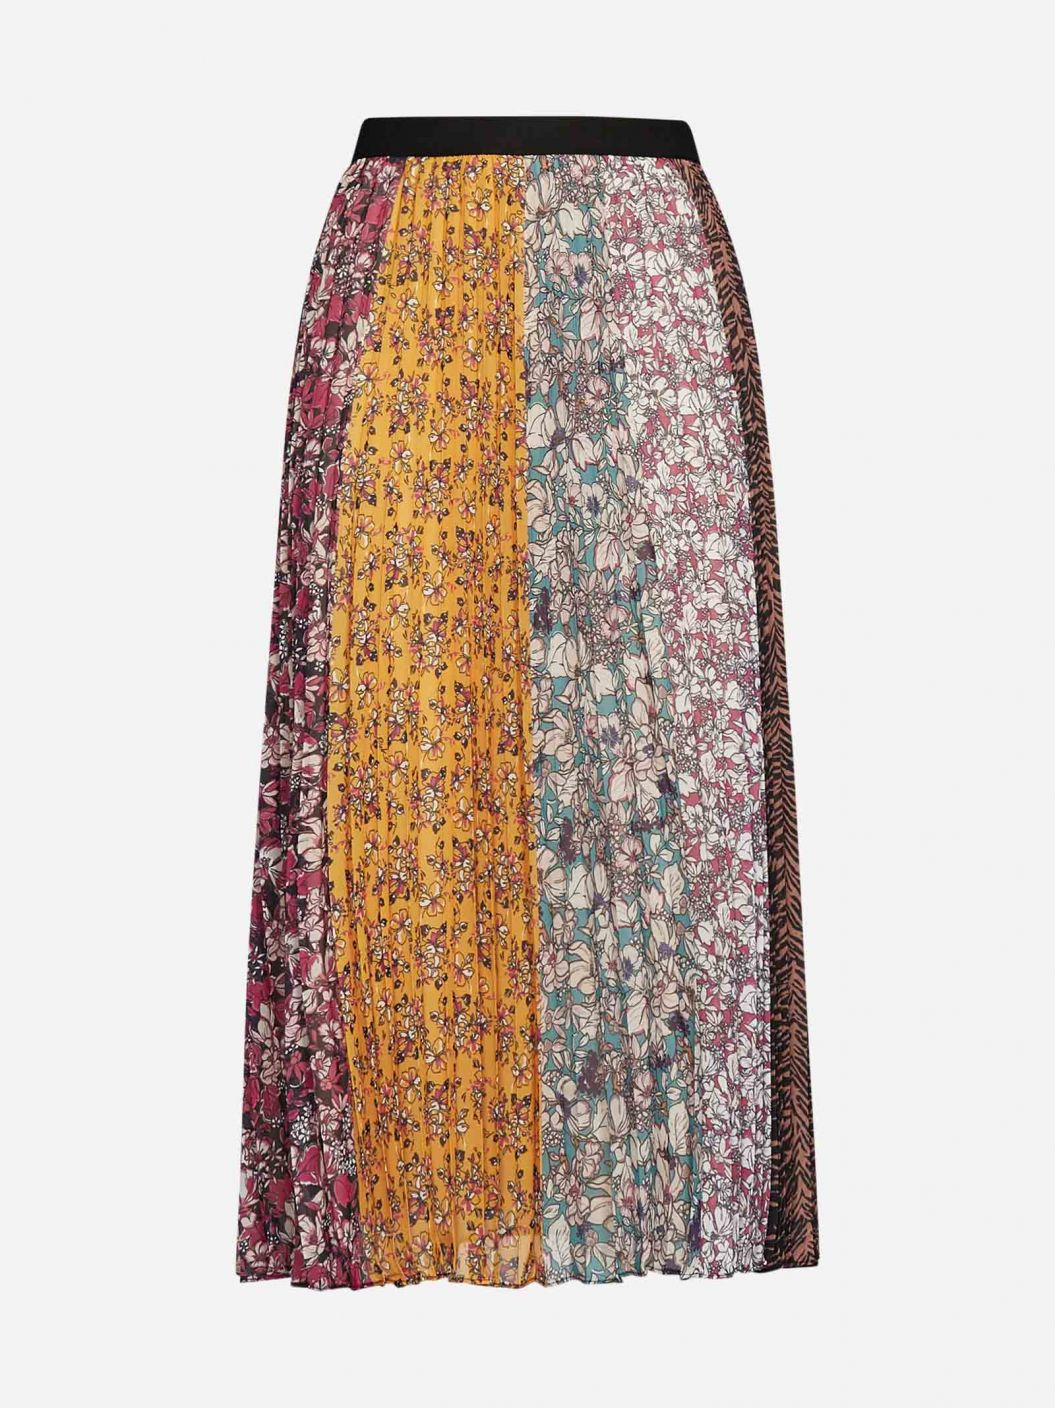 Abbeville floral print pleated skirt